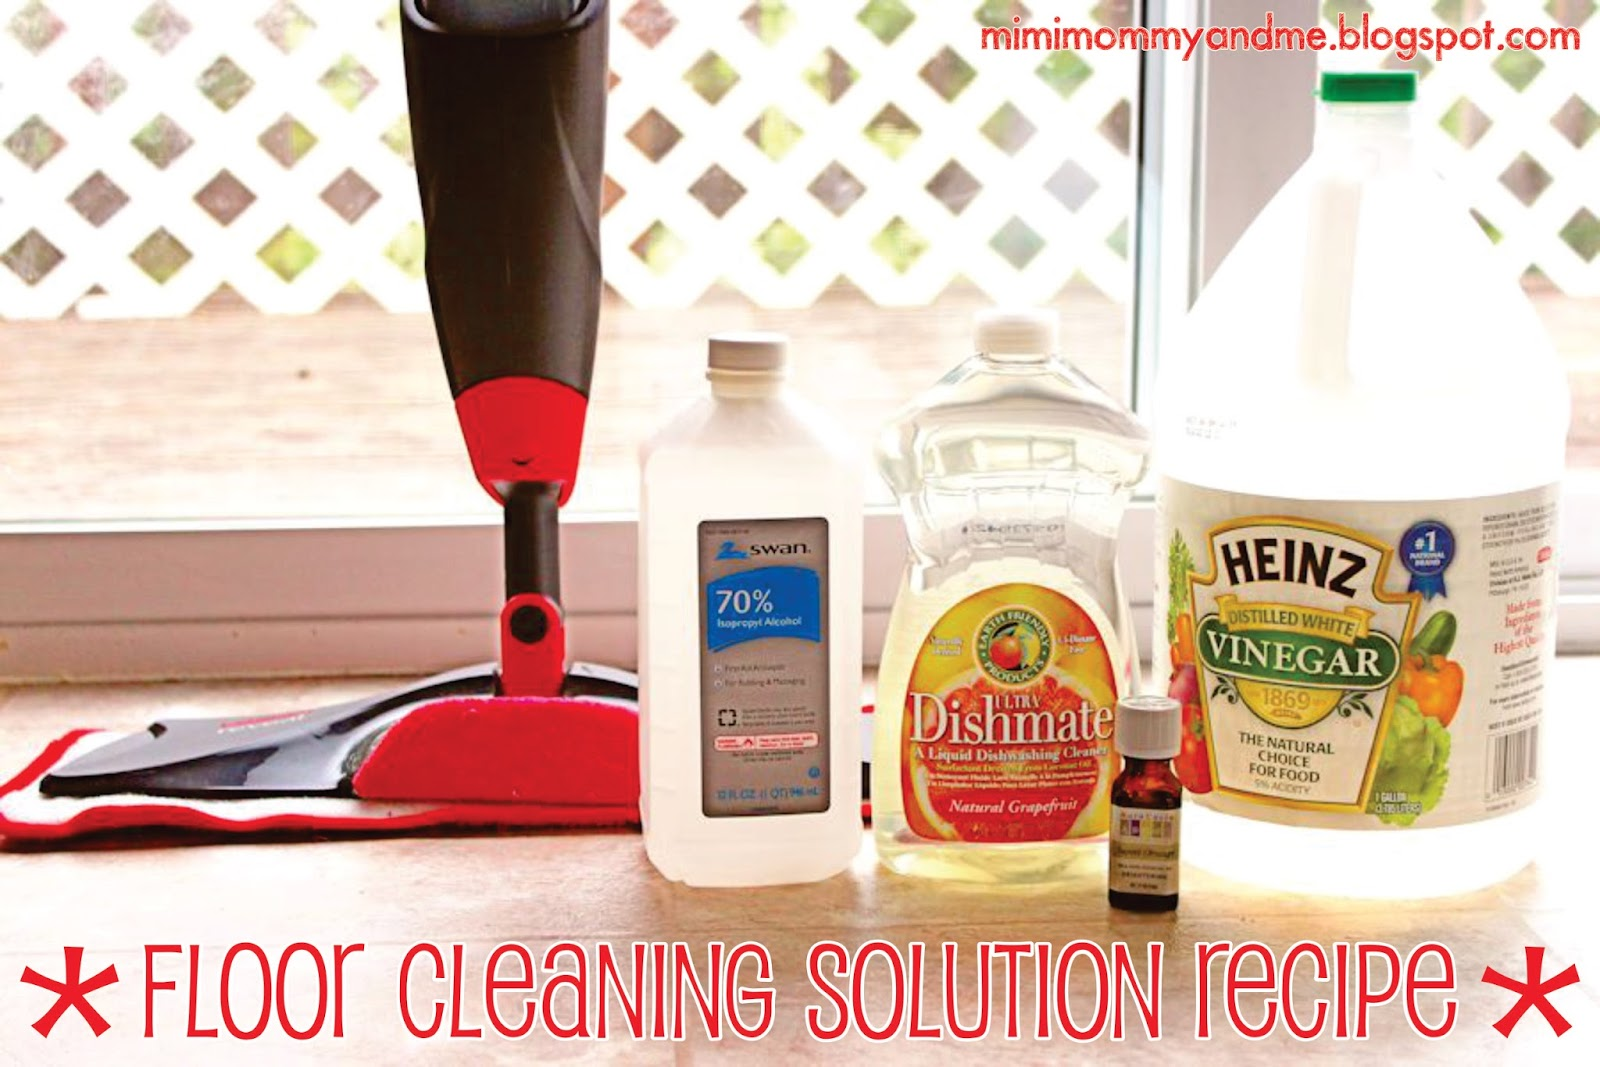 http://mimimommyandme.blogspot.com/2014/05/floor-cleaning-solution-recipe.html Floor Cleaner Recipe #Floorcleaner